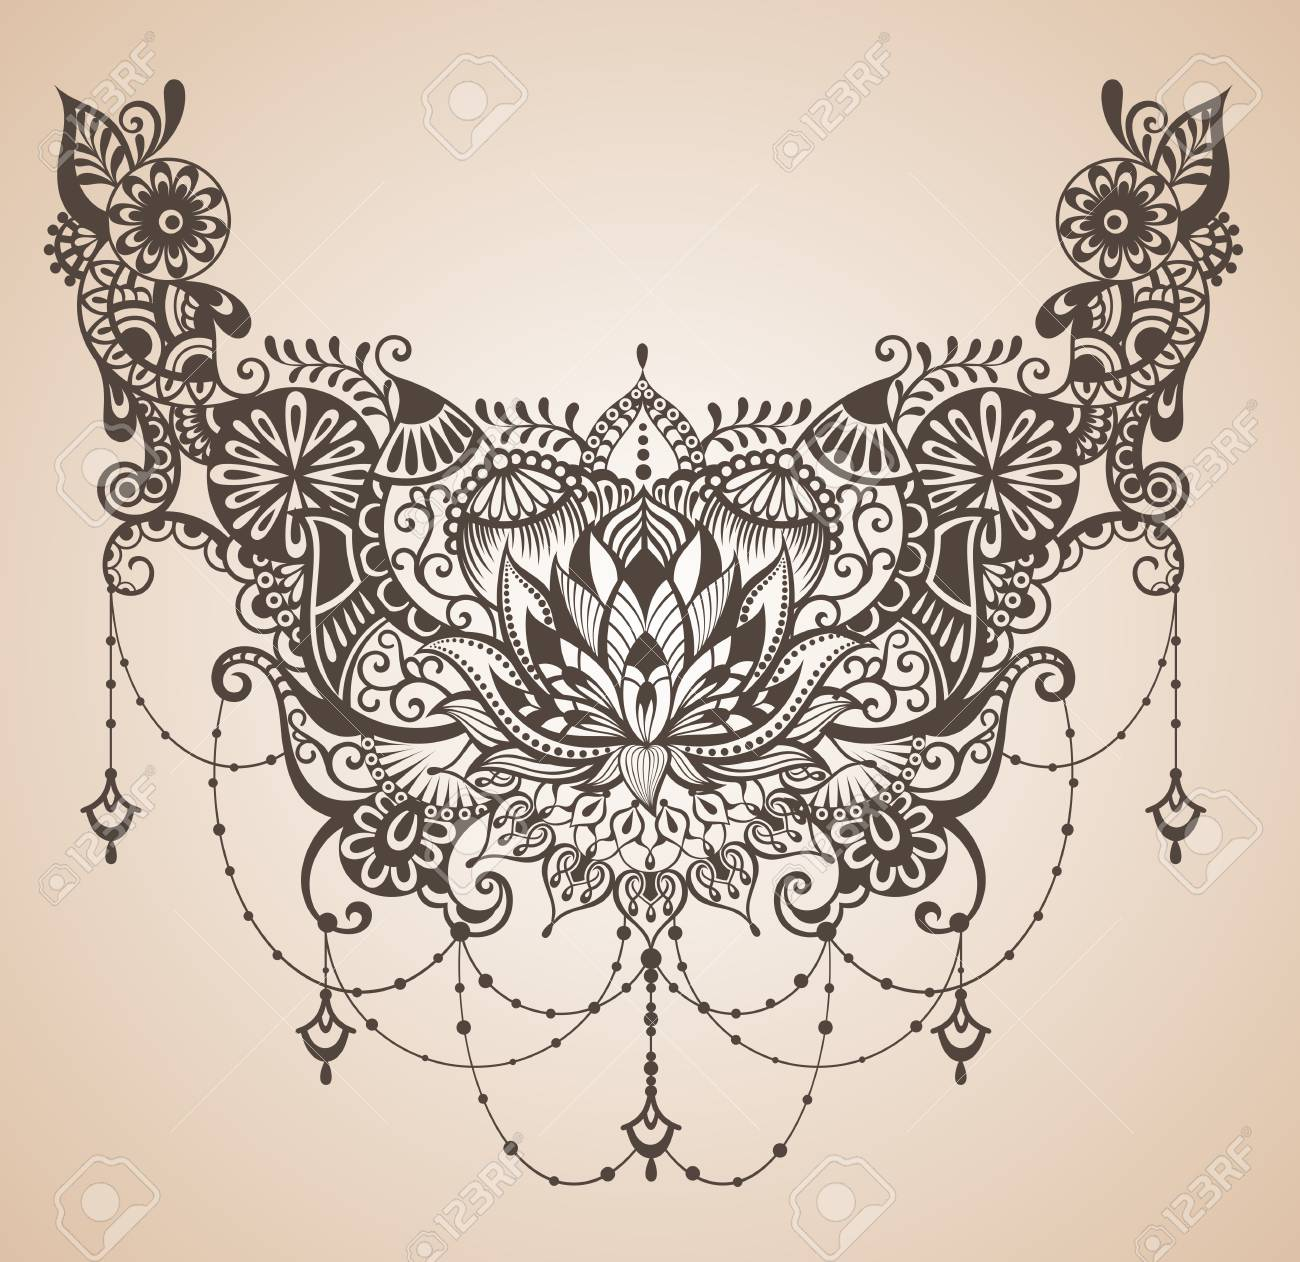 Henna Lotus Tattoo For Your Body Design Royalty Free Cliparts